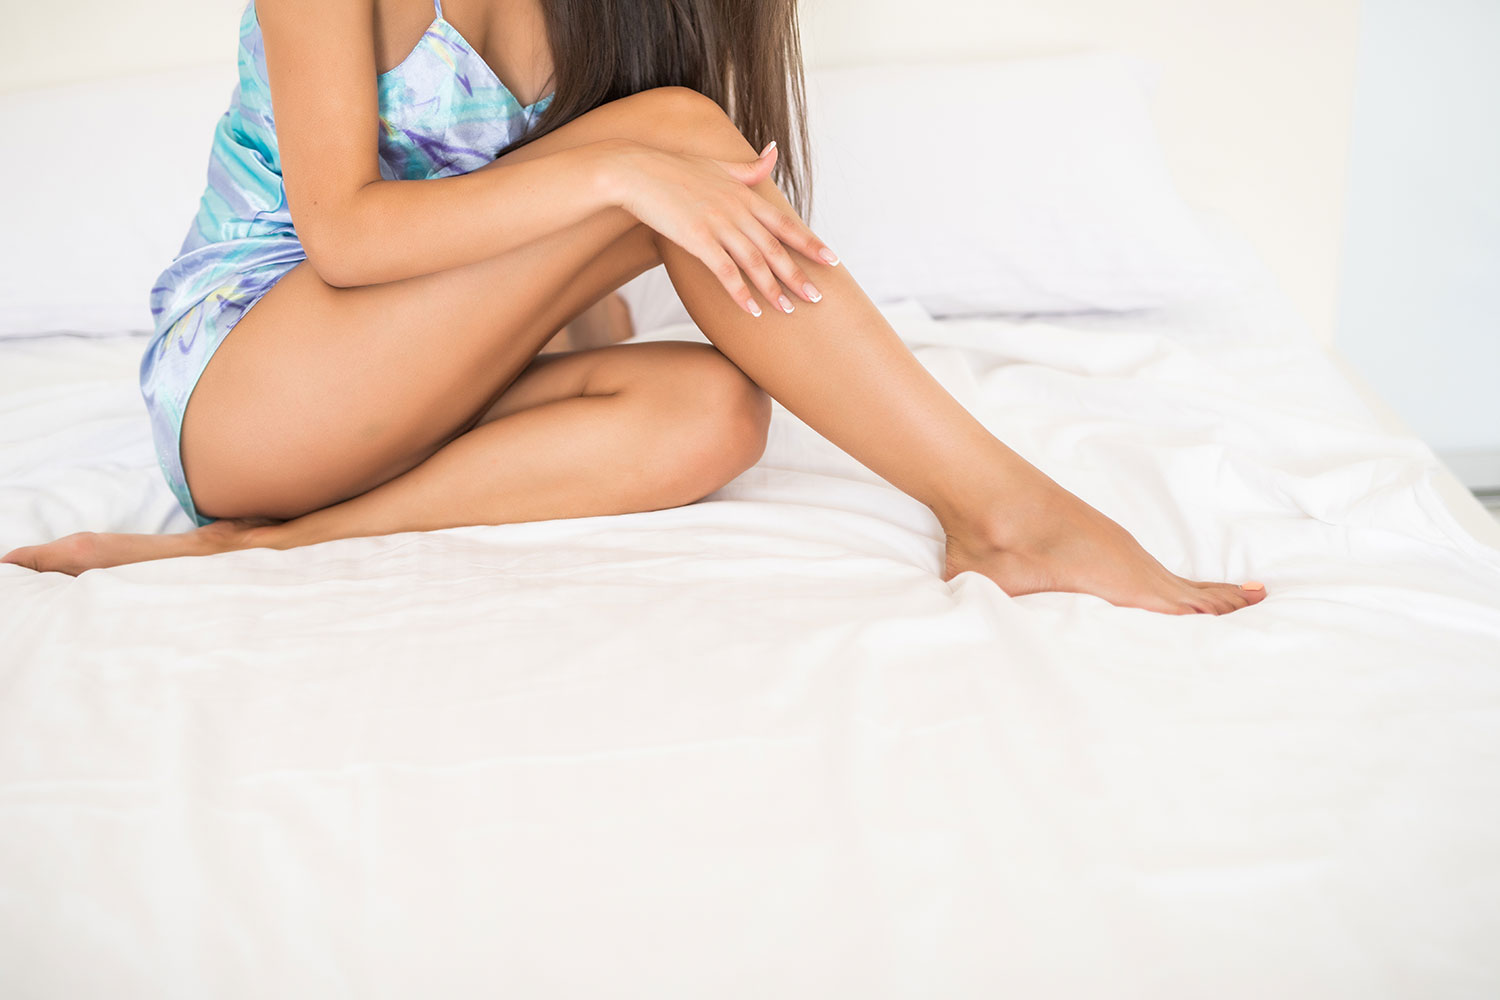 Do Varicose Veins Hurt To Touch?